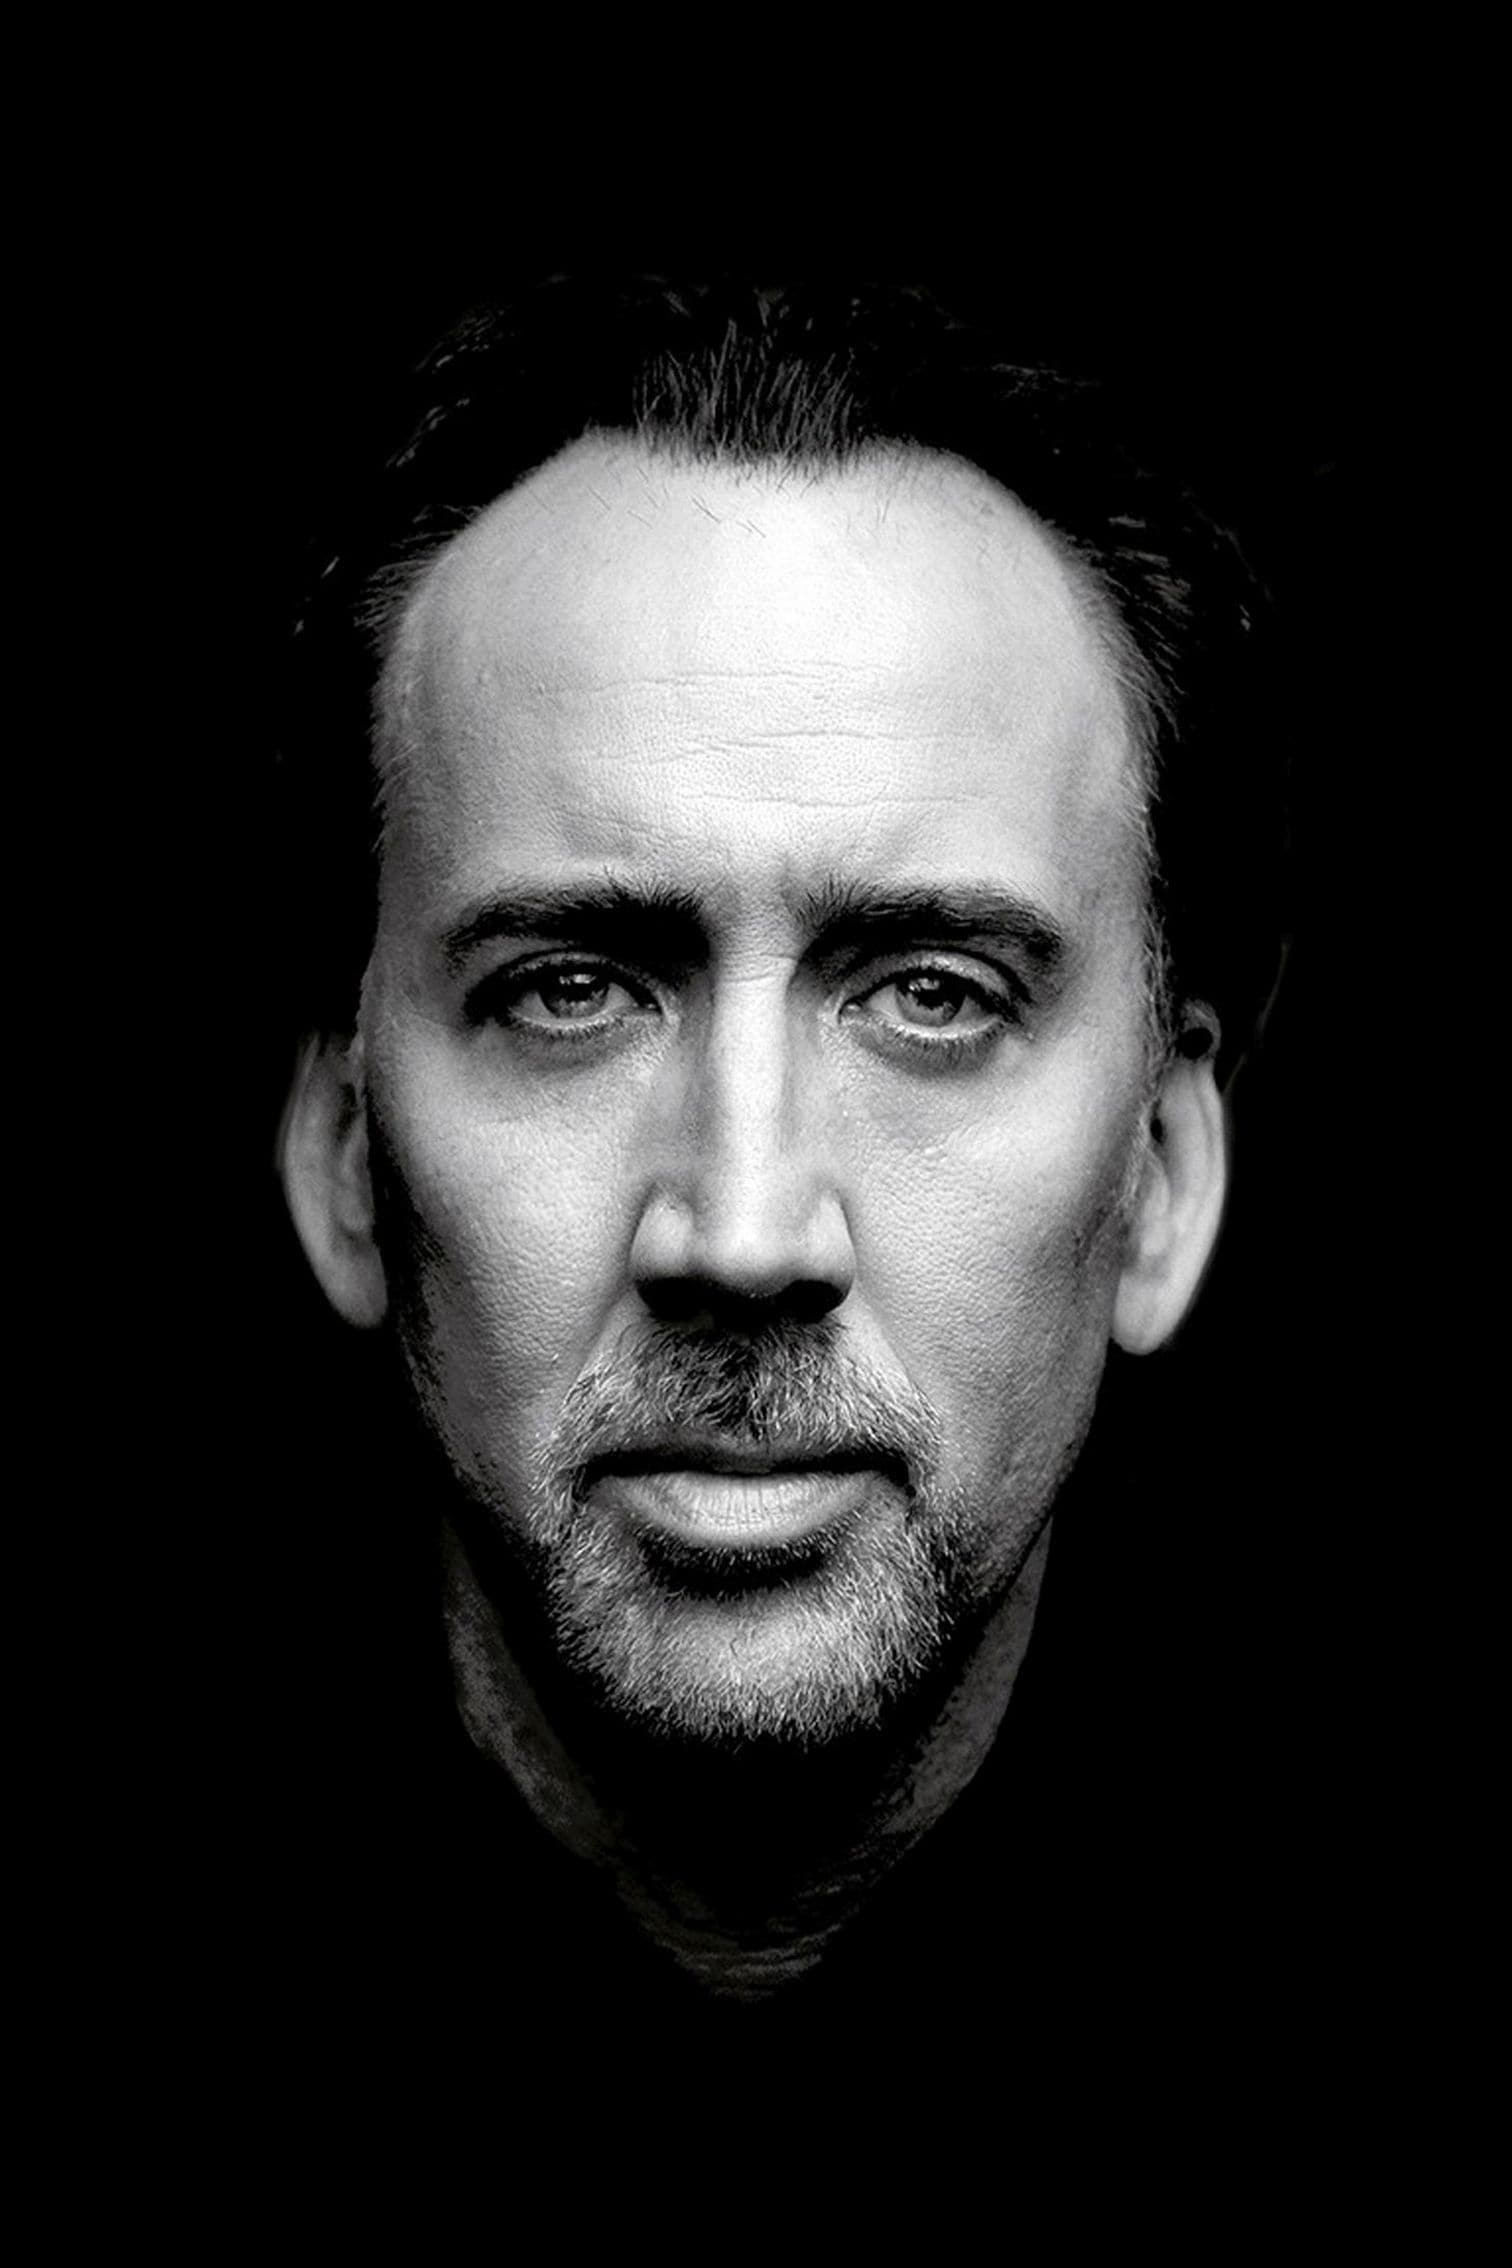 nicolas cage - photo #28